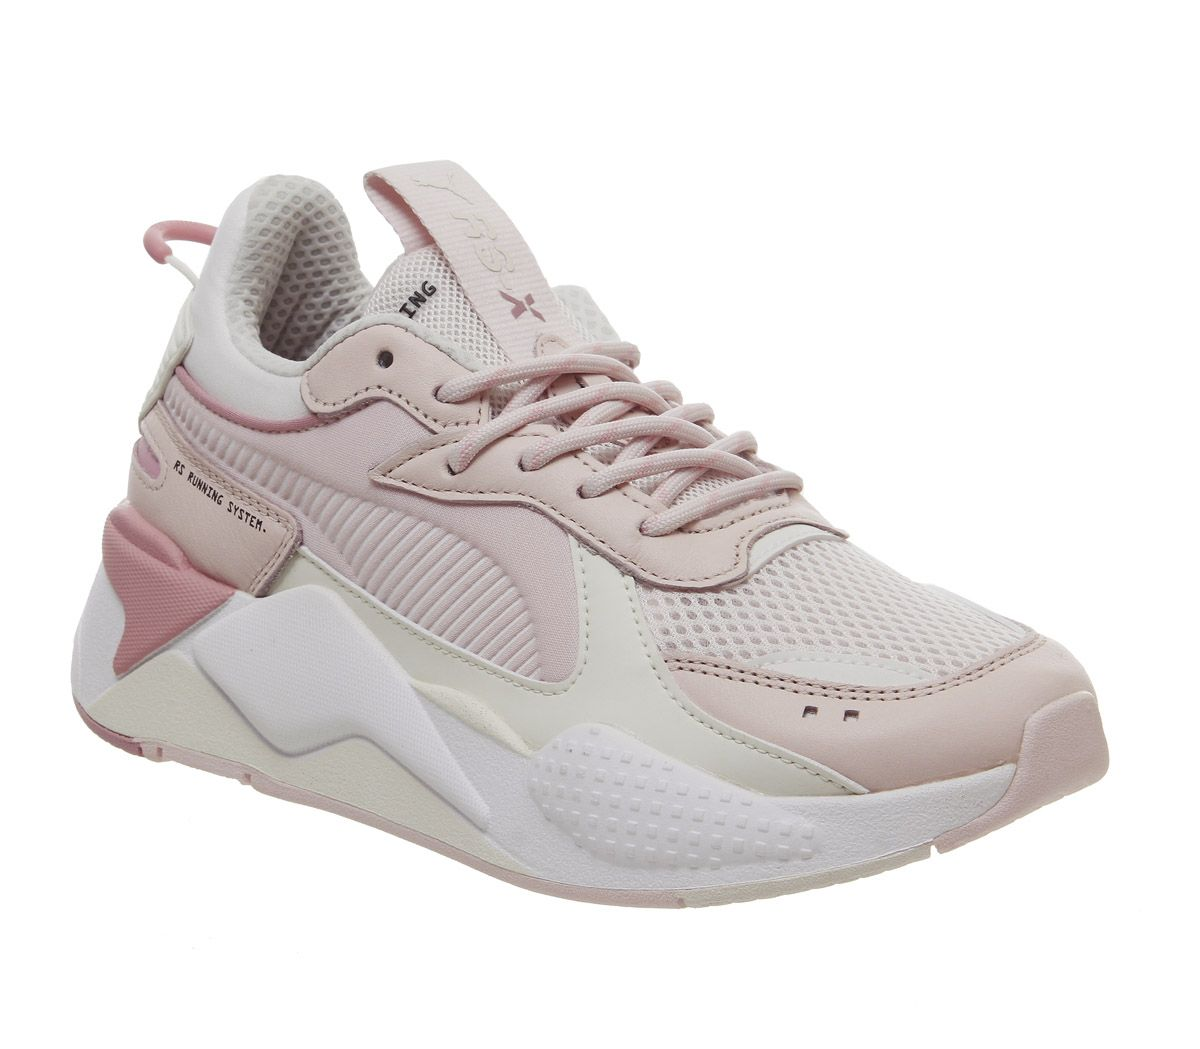 a3ae8c555ce Rs X Tracks Trainers by Puma